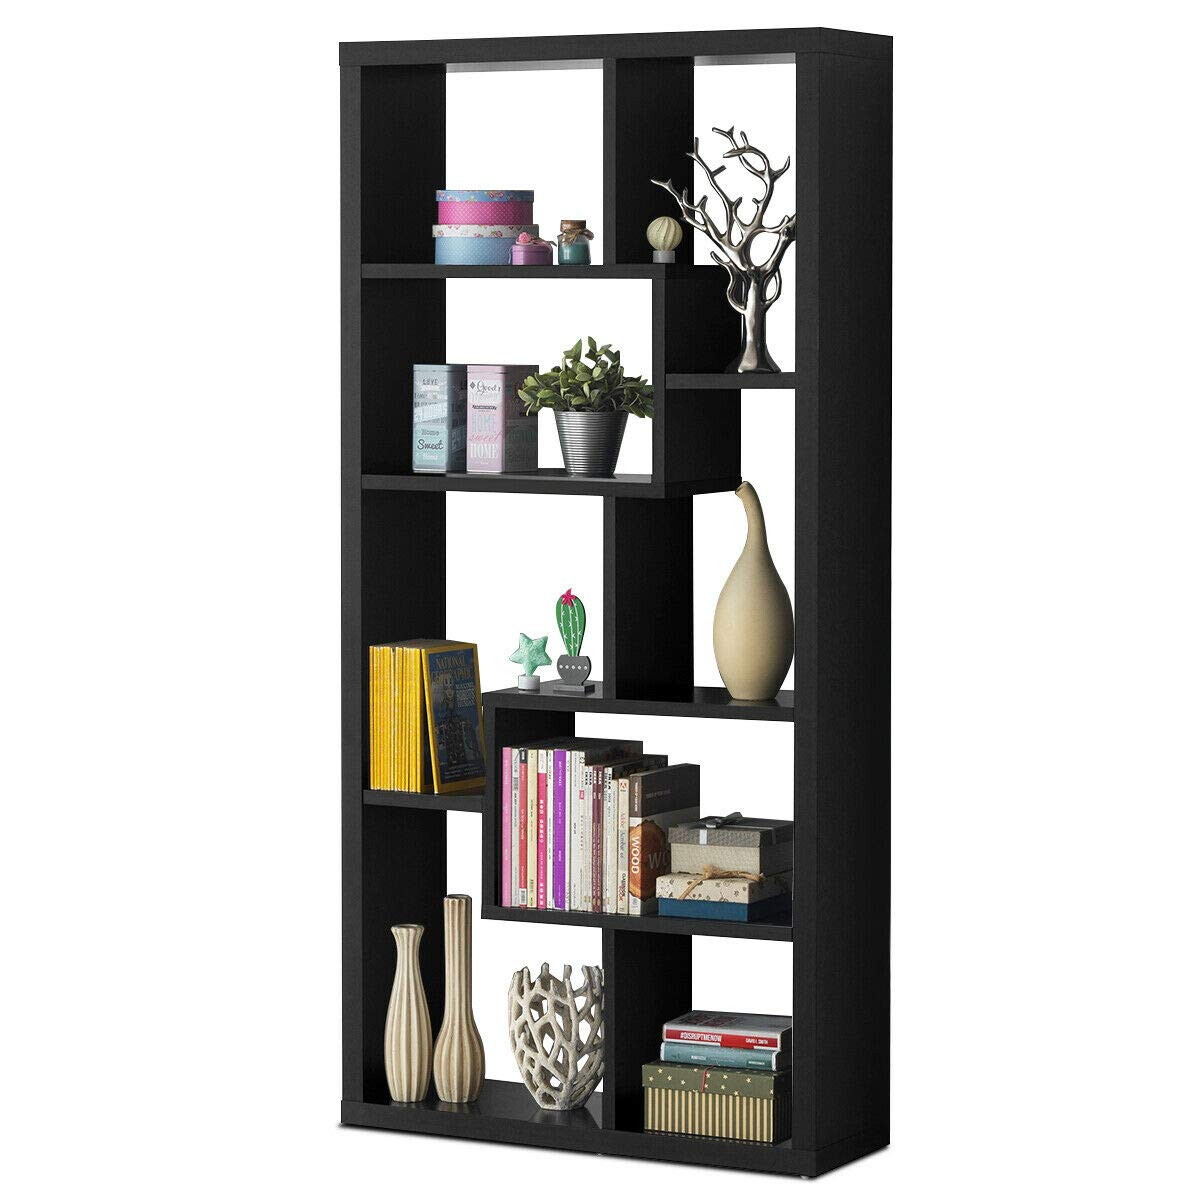 Giantex 8 Cubes Bookcase, Ladder Shelf Freestanding Corner Storage Bookshelf, 4-Layer Organizer Rack Display Cabinet Black